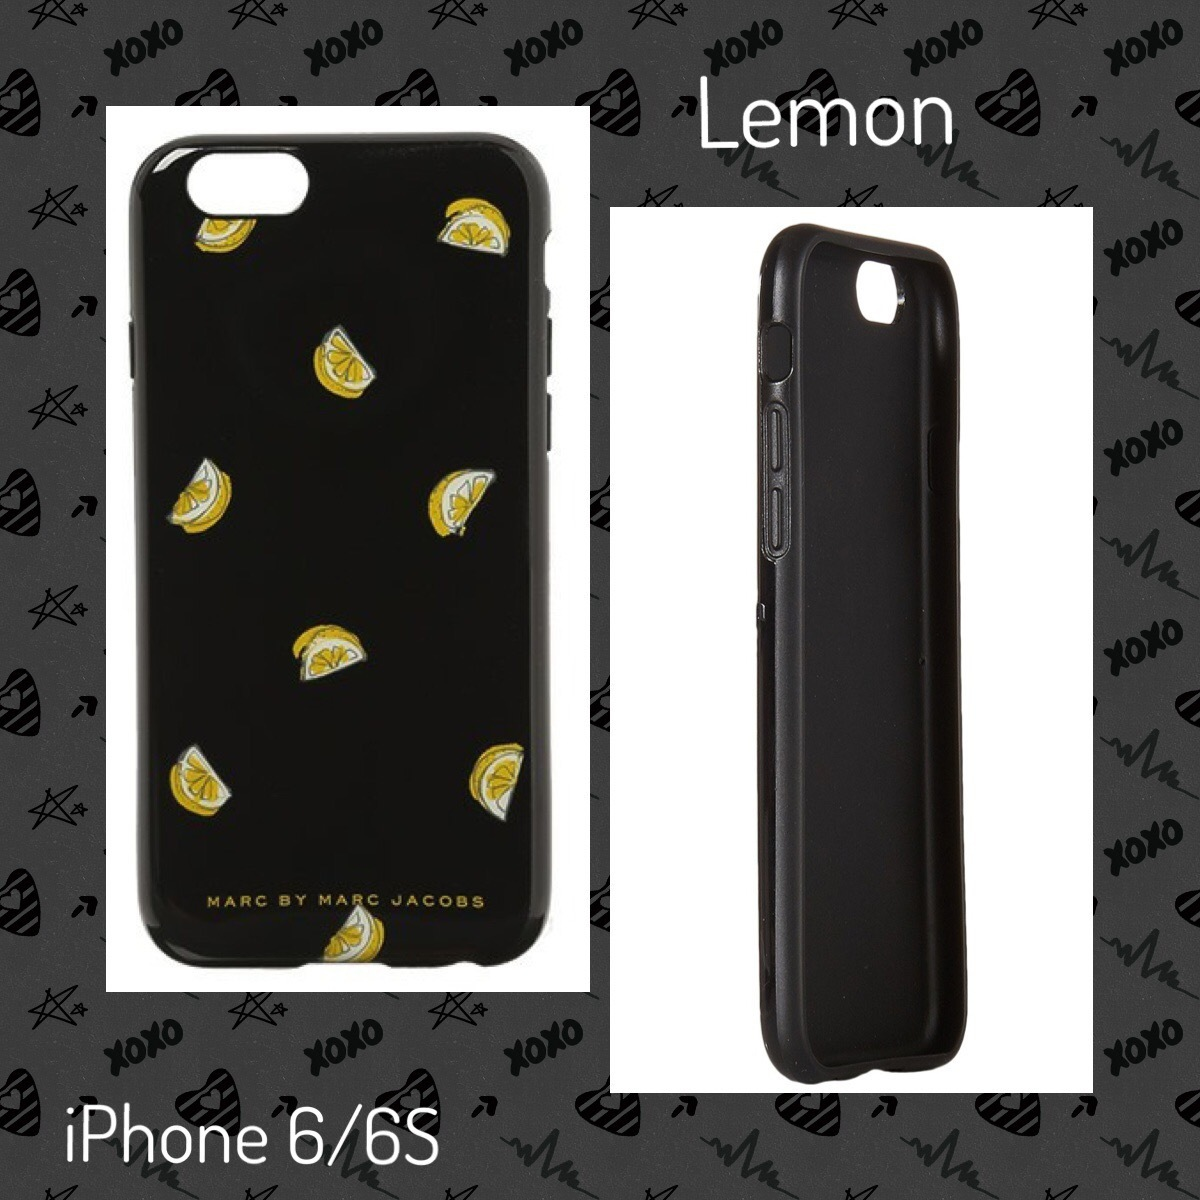 MJ / iPhone 6/6S case / ブラックハードケースf(Cherry/Lemon)